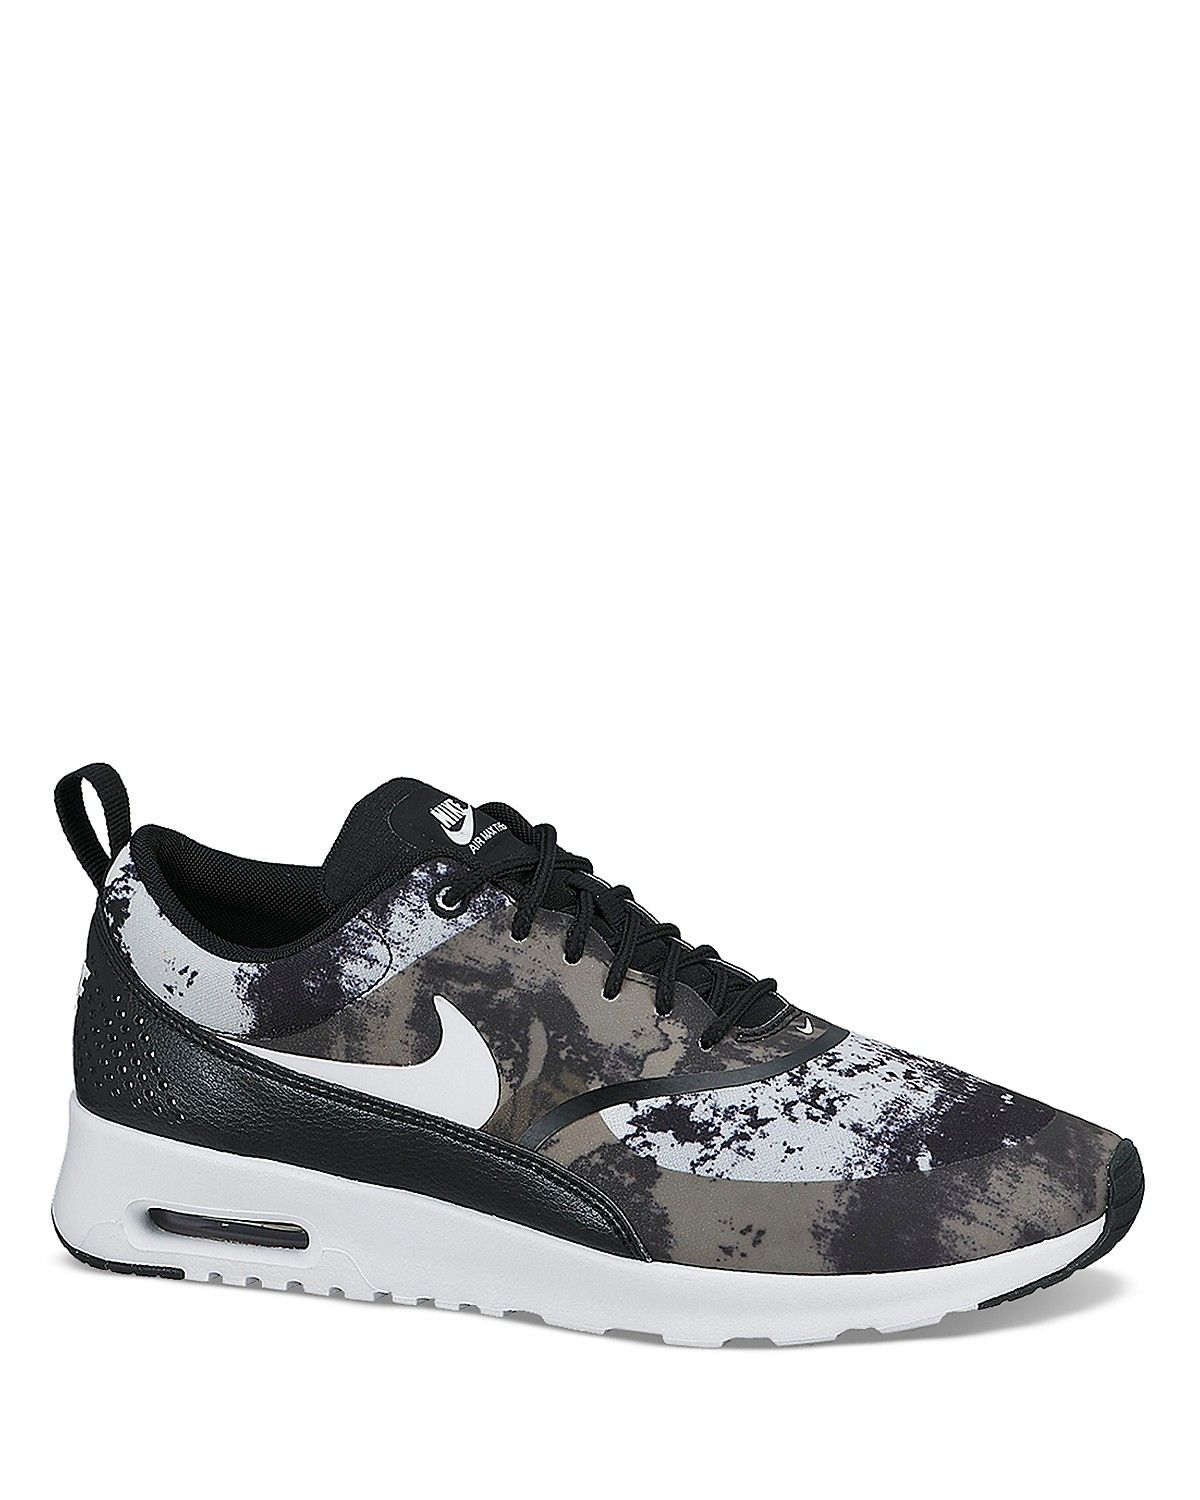 empeorar Desmenuzar Monumento  Nike Lace Up Sneaker - Women's Nike Air Max Thea Print EDITORIAL - Women's  New Arrivals - Shoes - Bloomingdale's | Nike sneakers women, Nike air max  for women, Nike air max